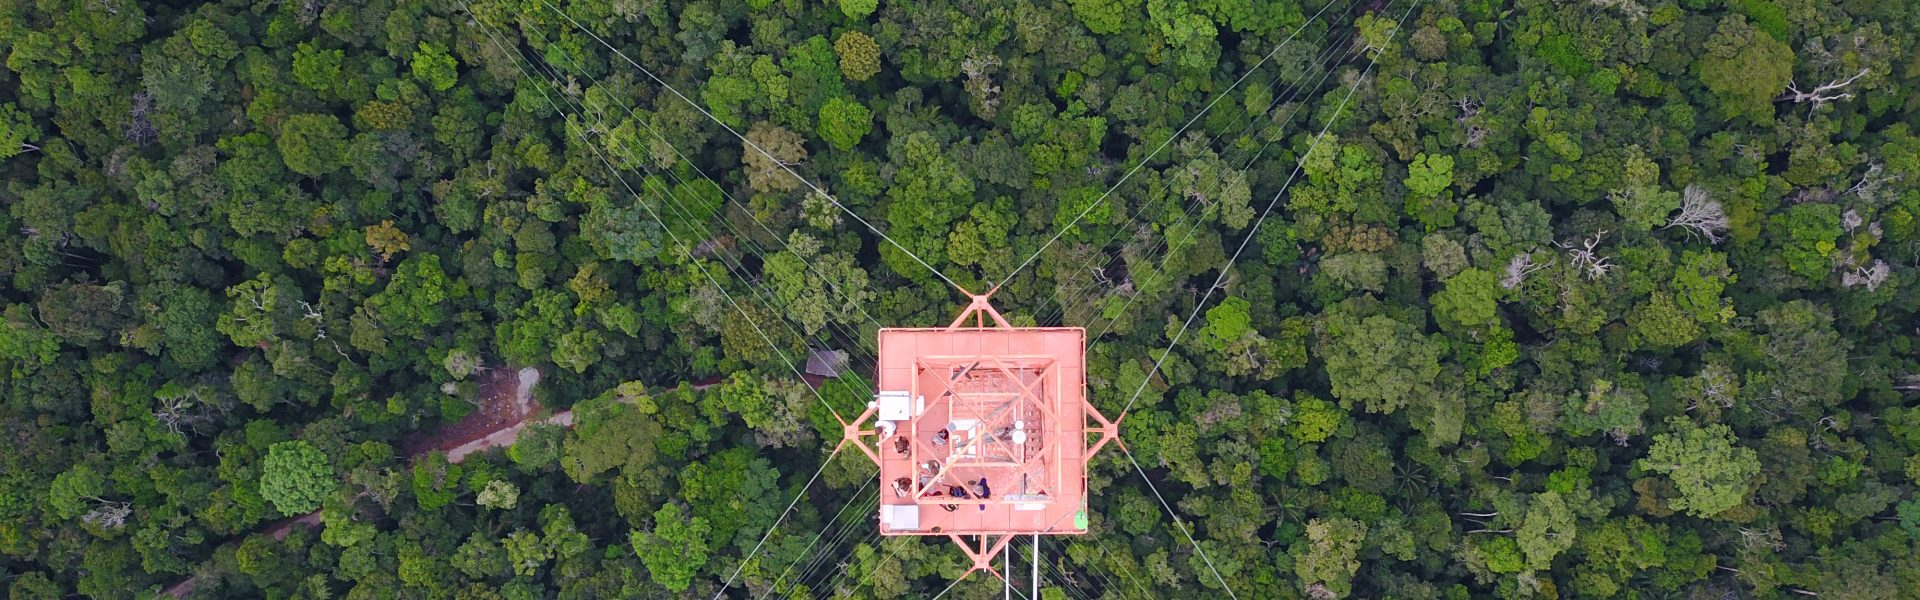 ATTO - Amazon Tall Tower Observatory